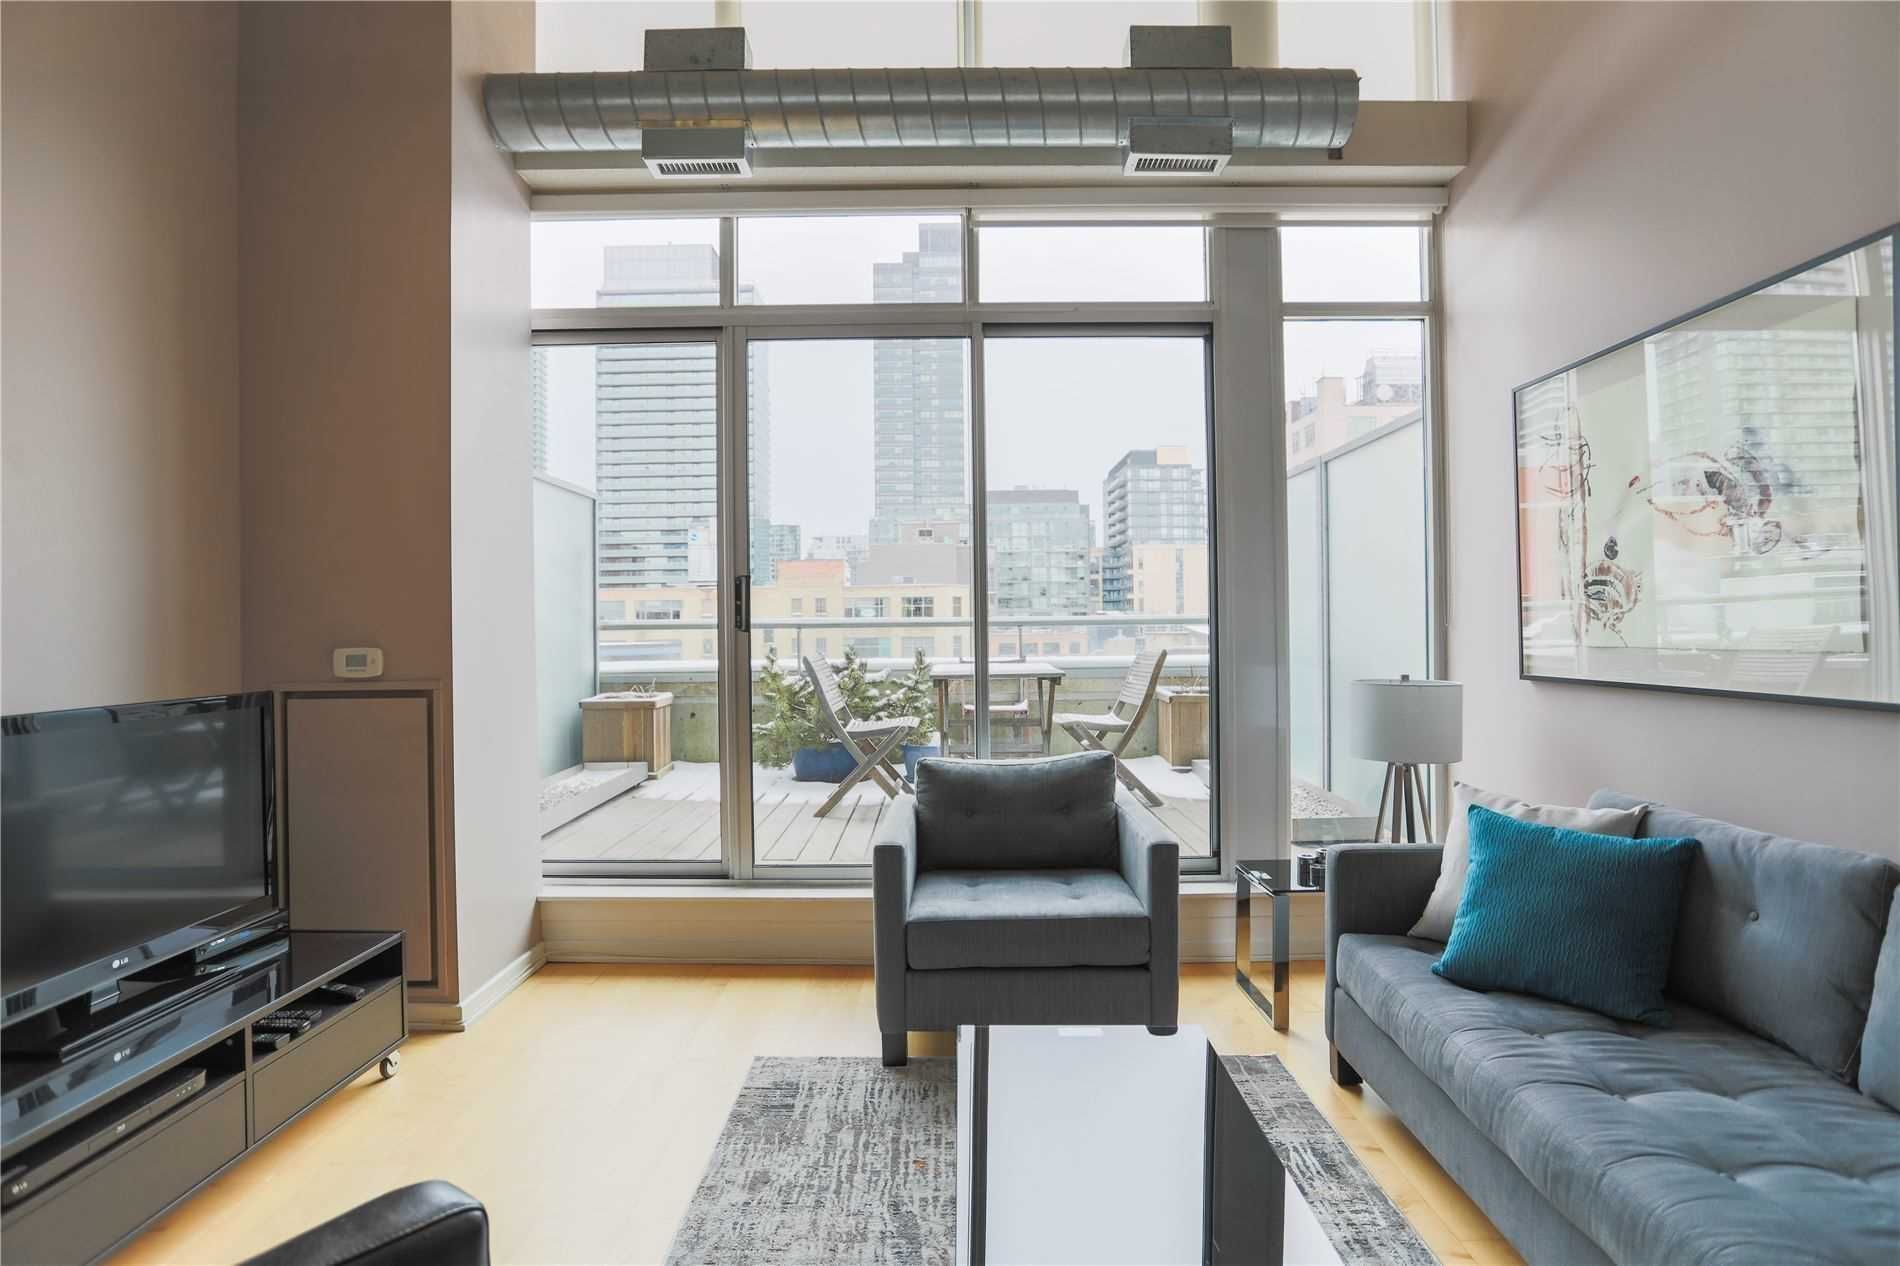 388 Richmond St, unit 704 for rent in Toronto - image #1